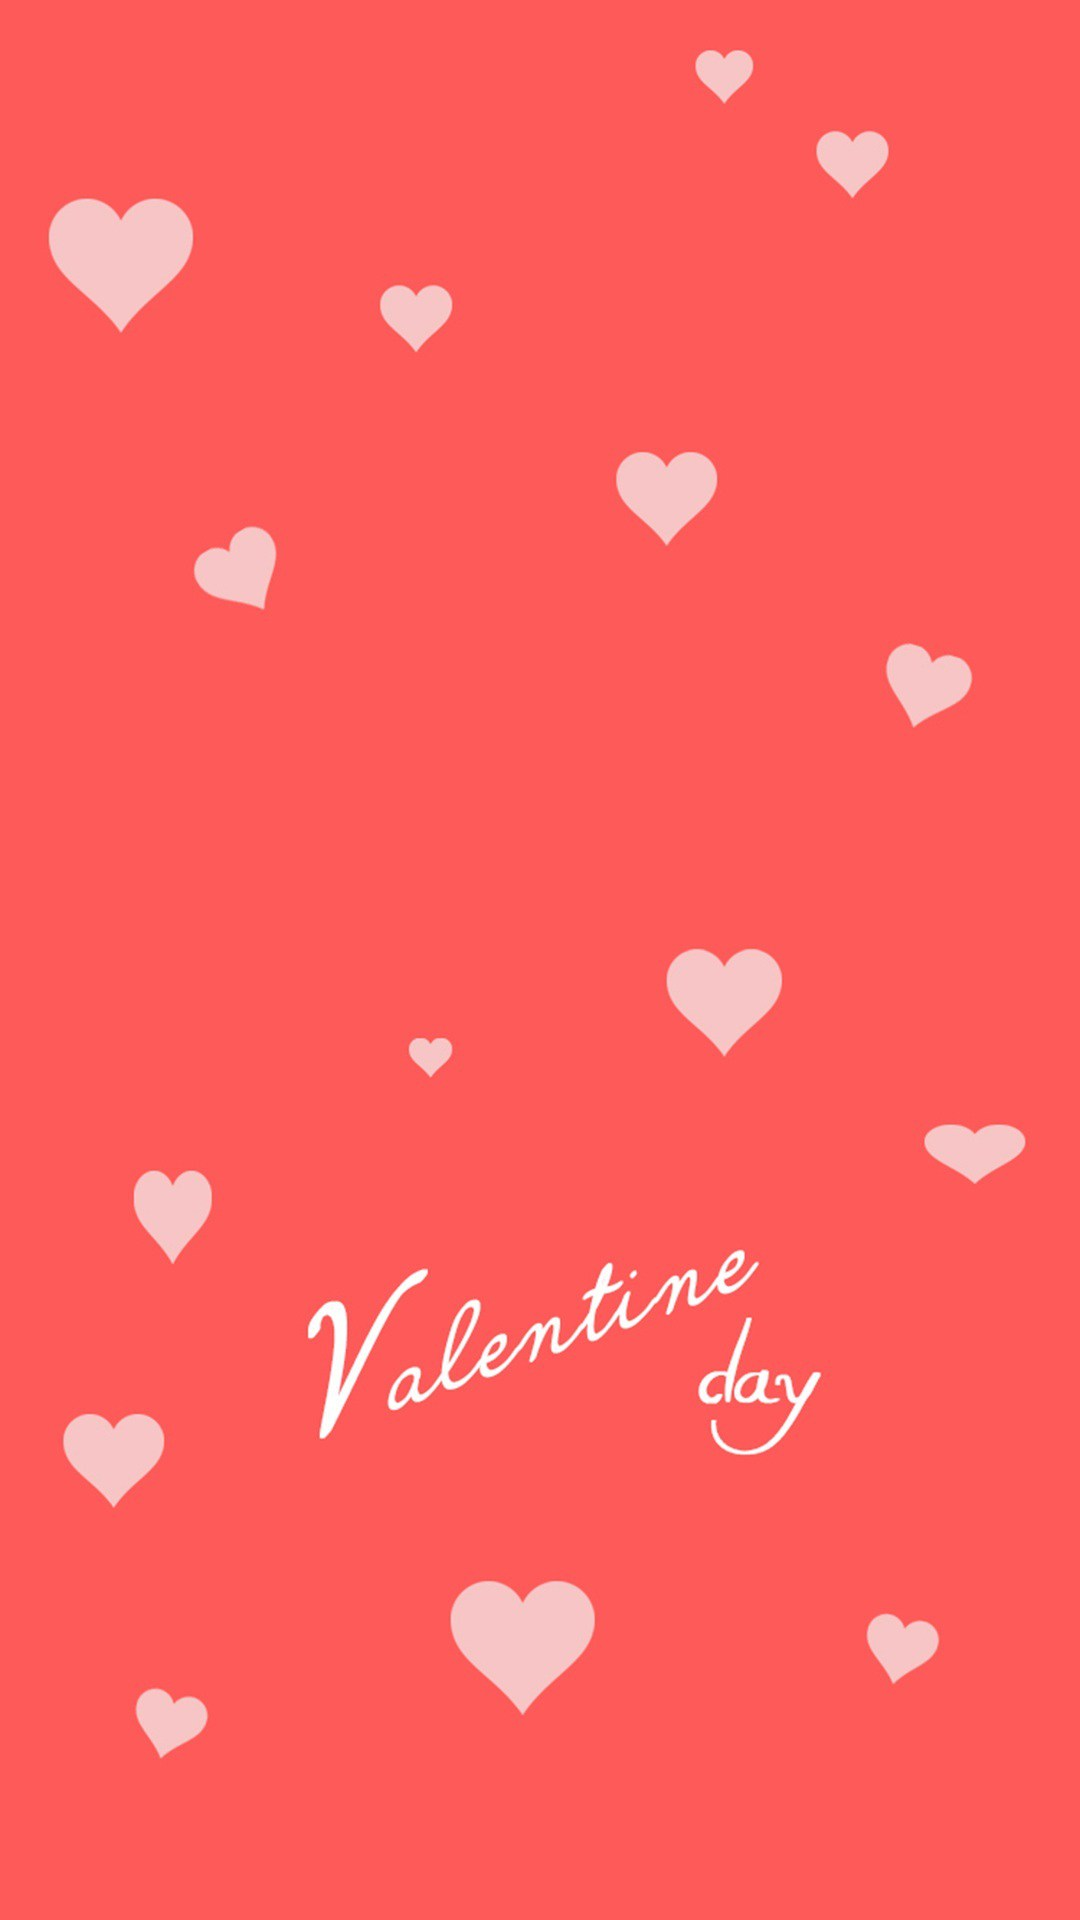 Valentine Day Android wallpaper